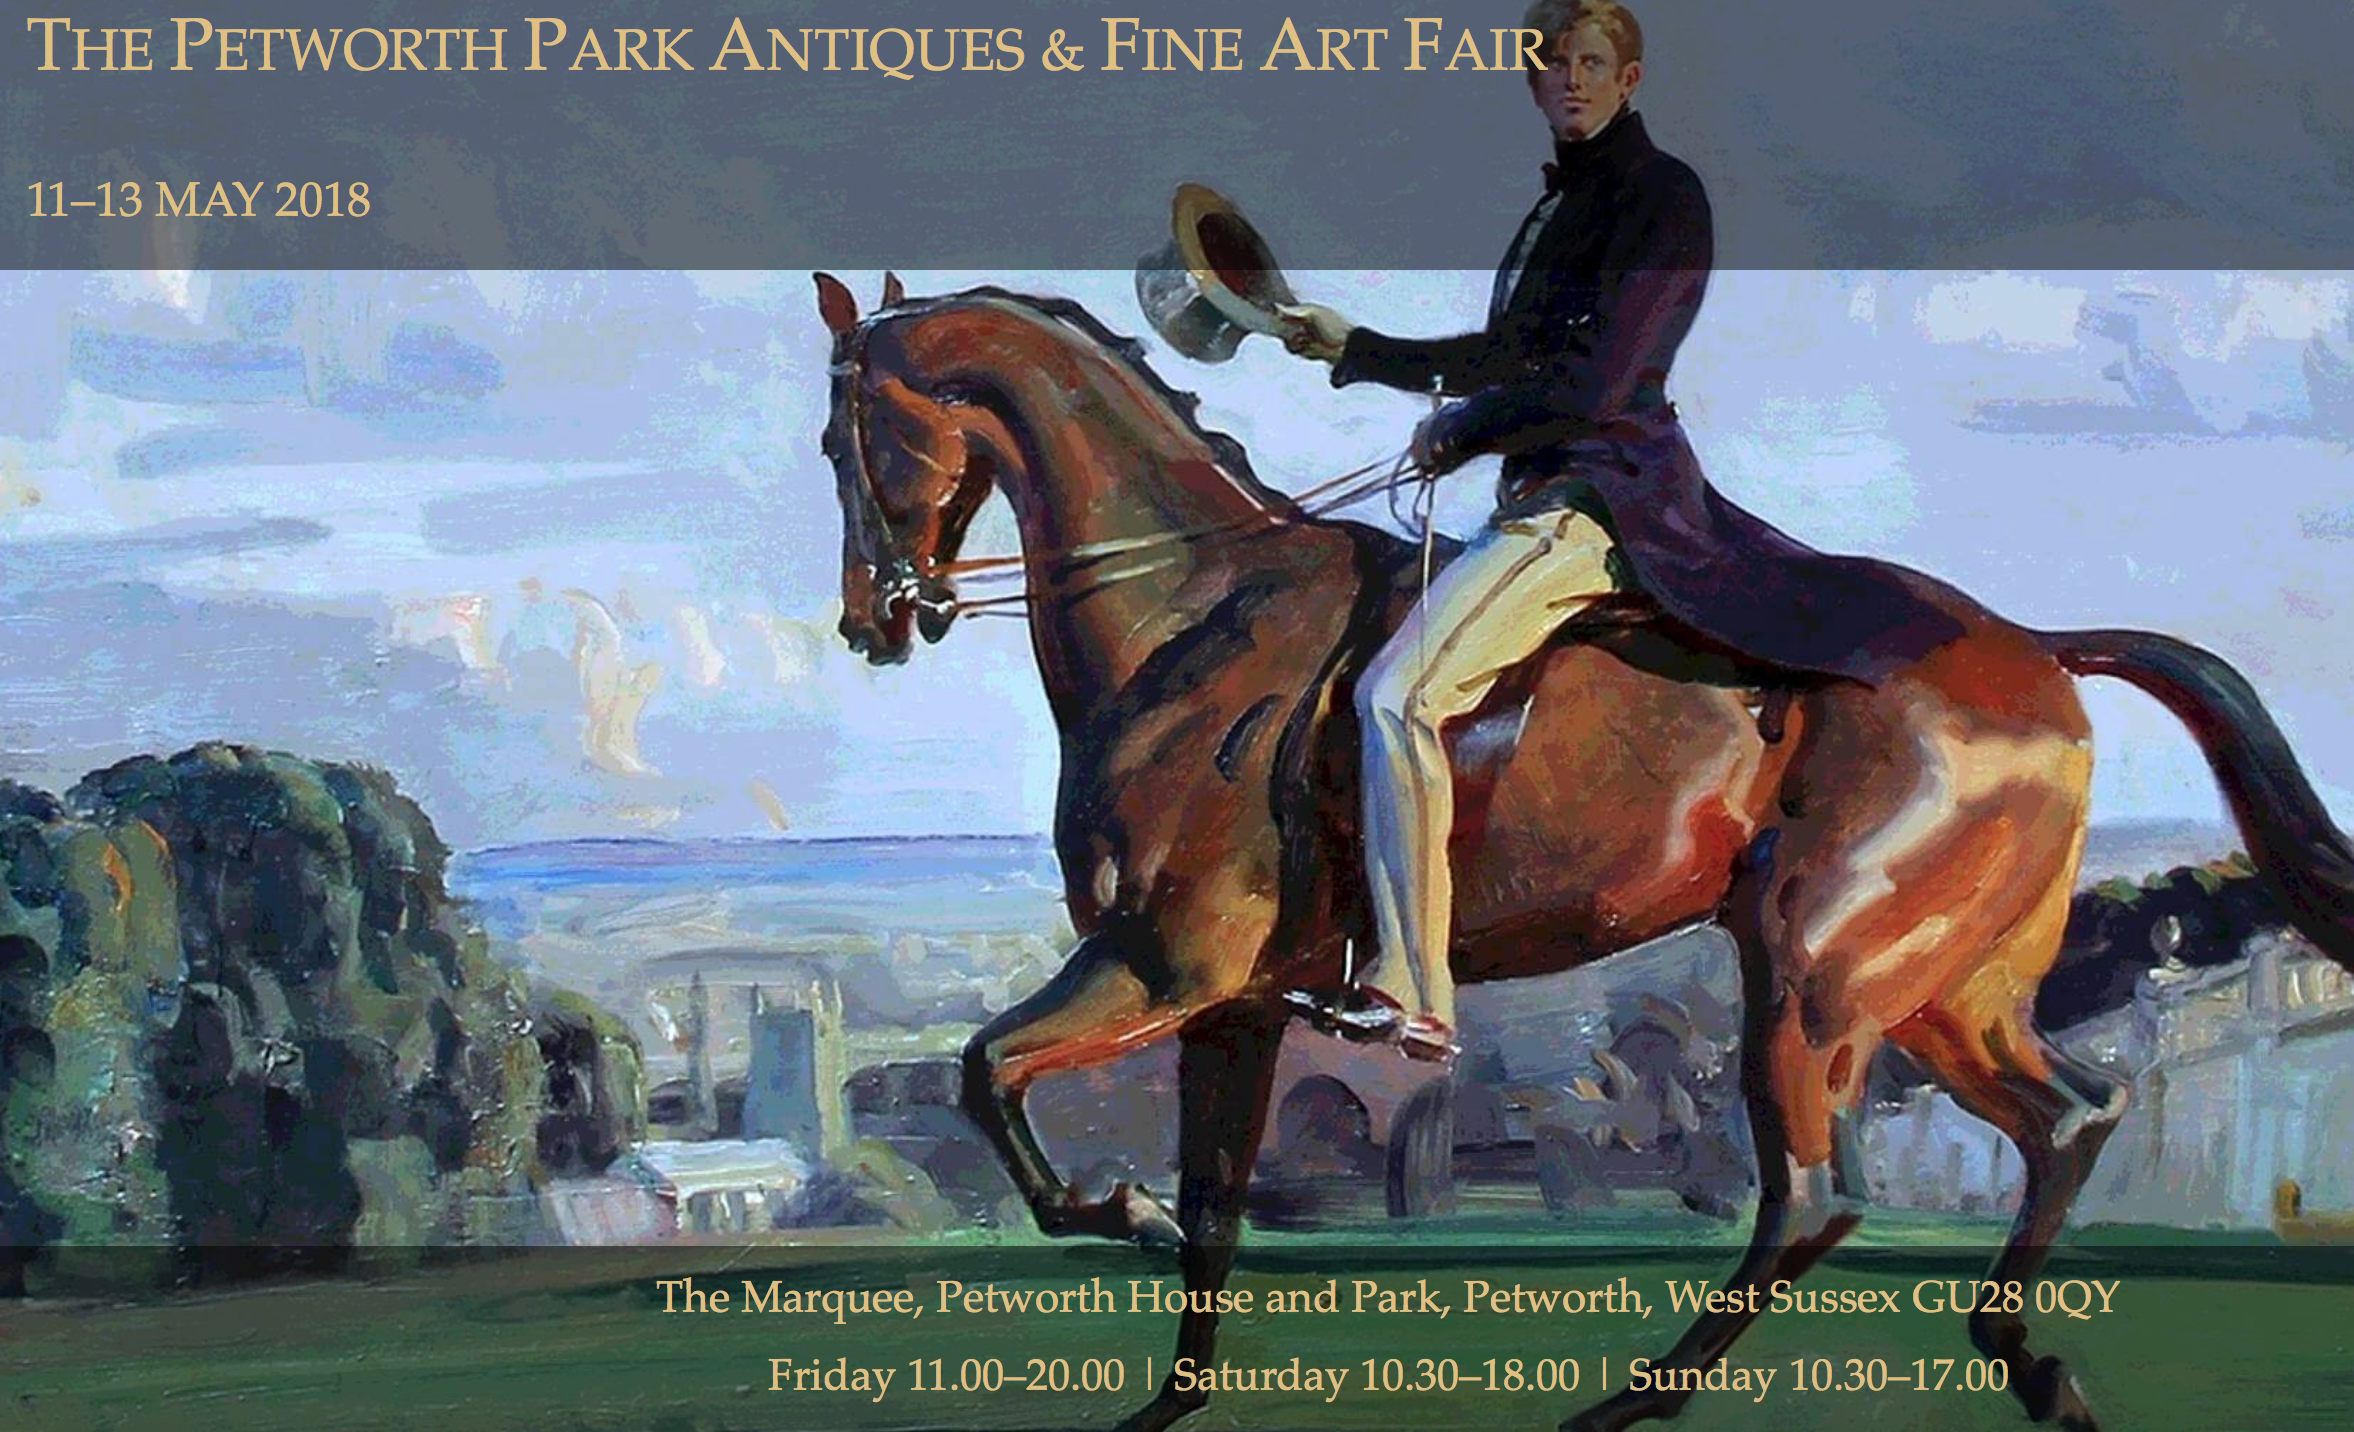 Petworth Park Antiques & Fine Arts Fair